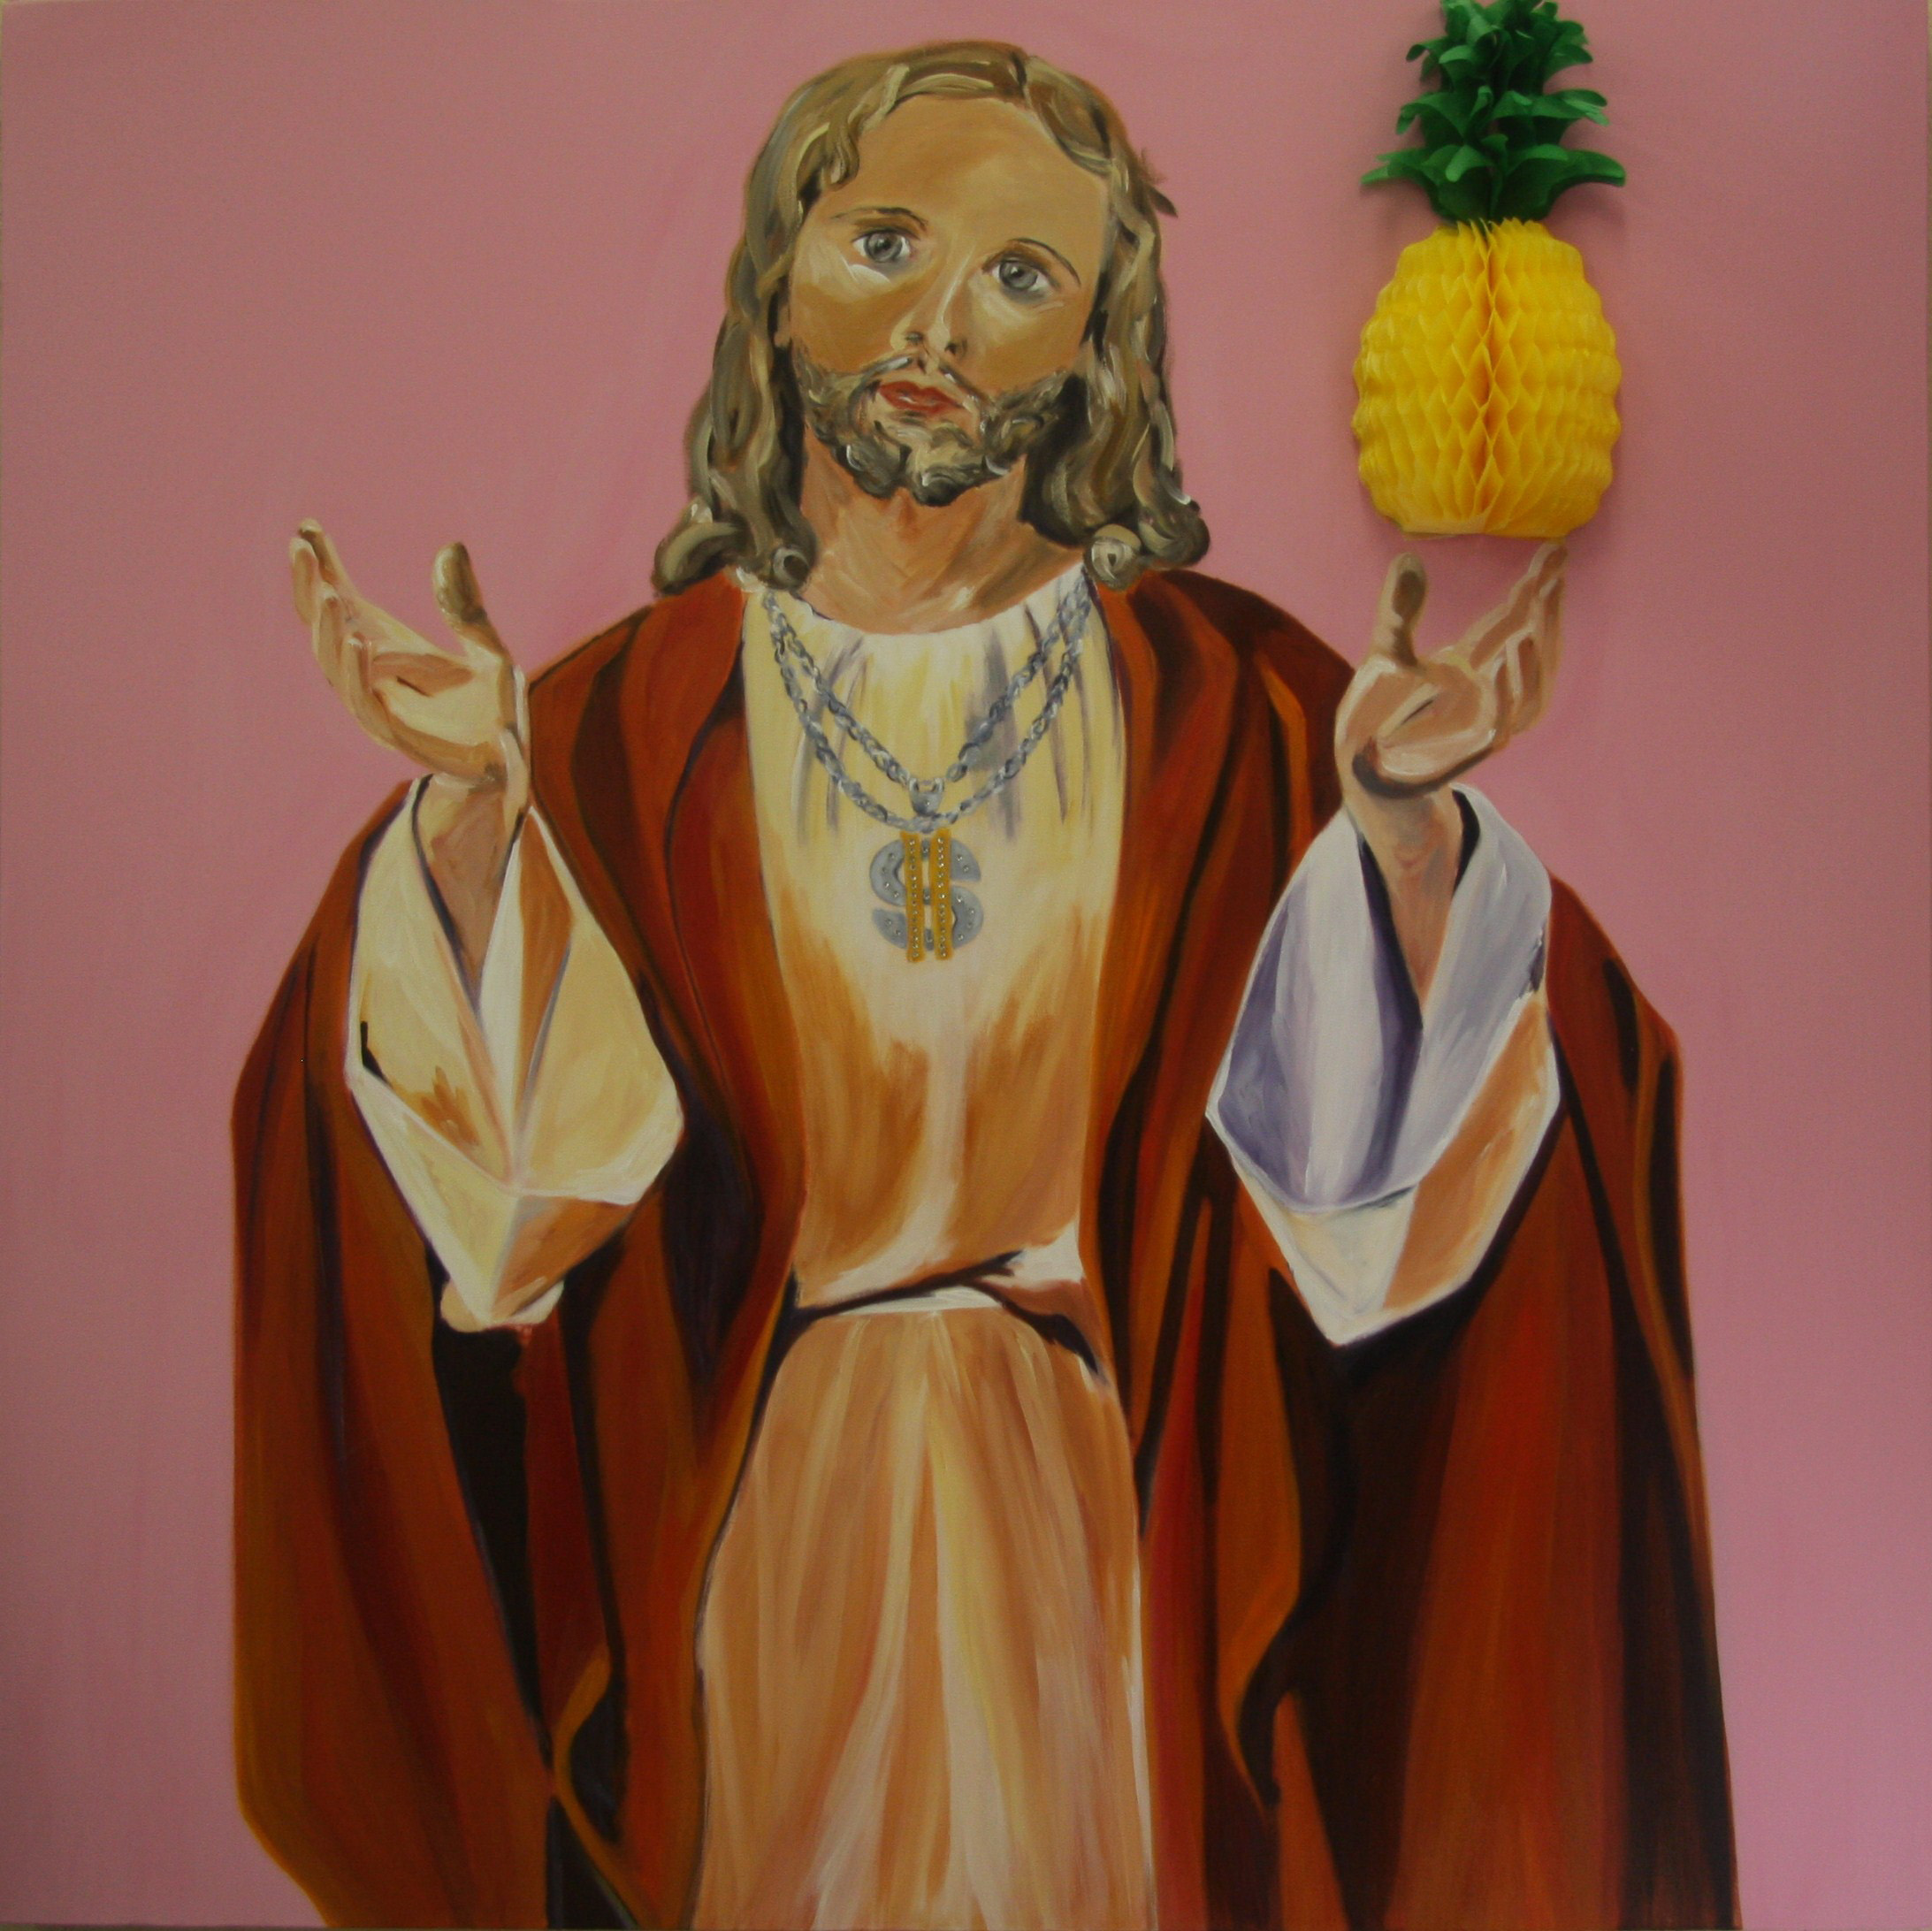 Christ with Pineapple